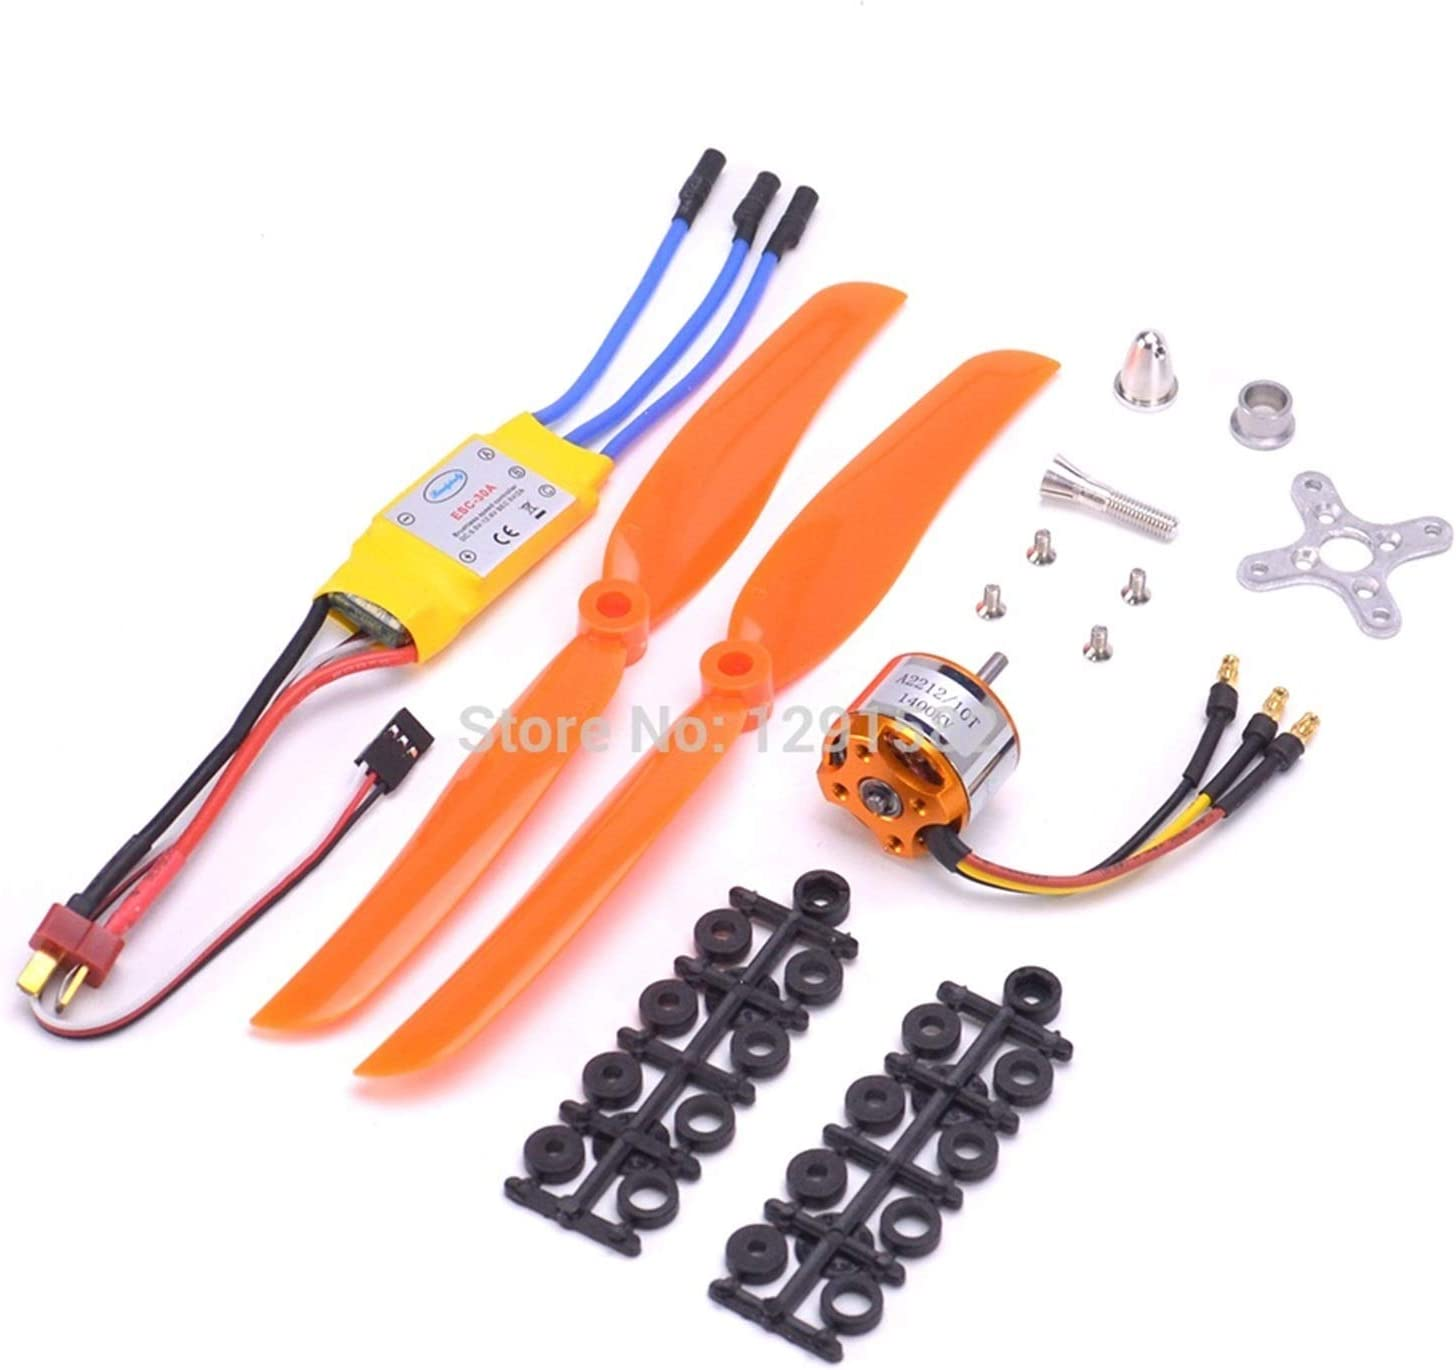 HONG YI-HAT A2212 2212 1400KV Brushless Motor 30A ESC Motor Mount 8060 Propeller SG90 9G Micro Servo set for RC Fixed Wing Plane Helicopter Drone Spare Parts Color : 2212 1400kv motor